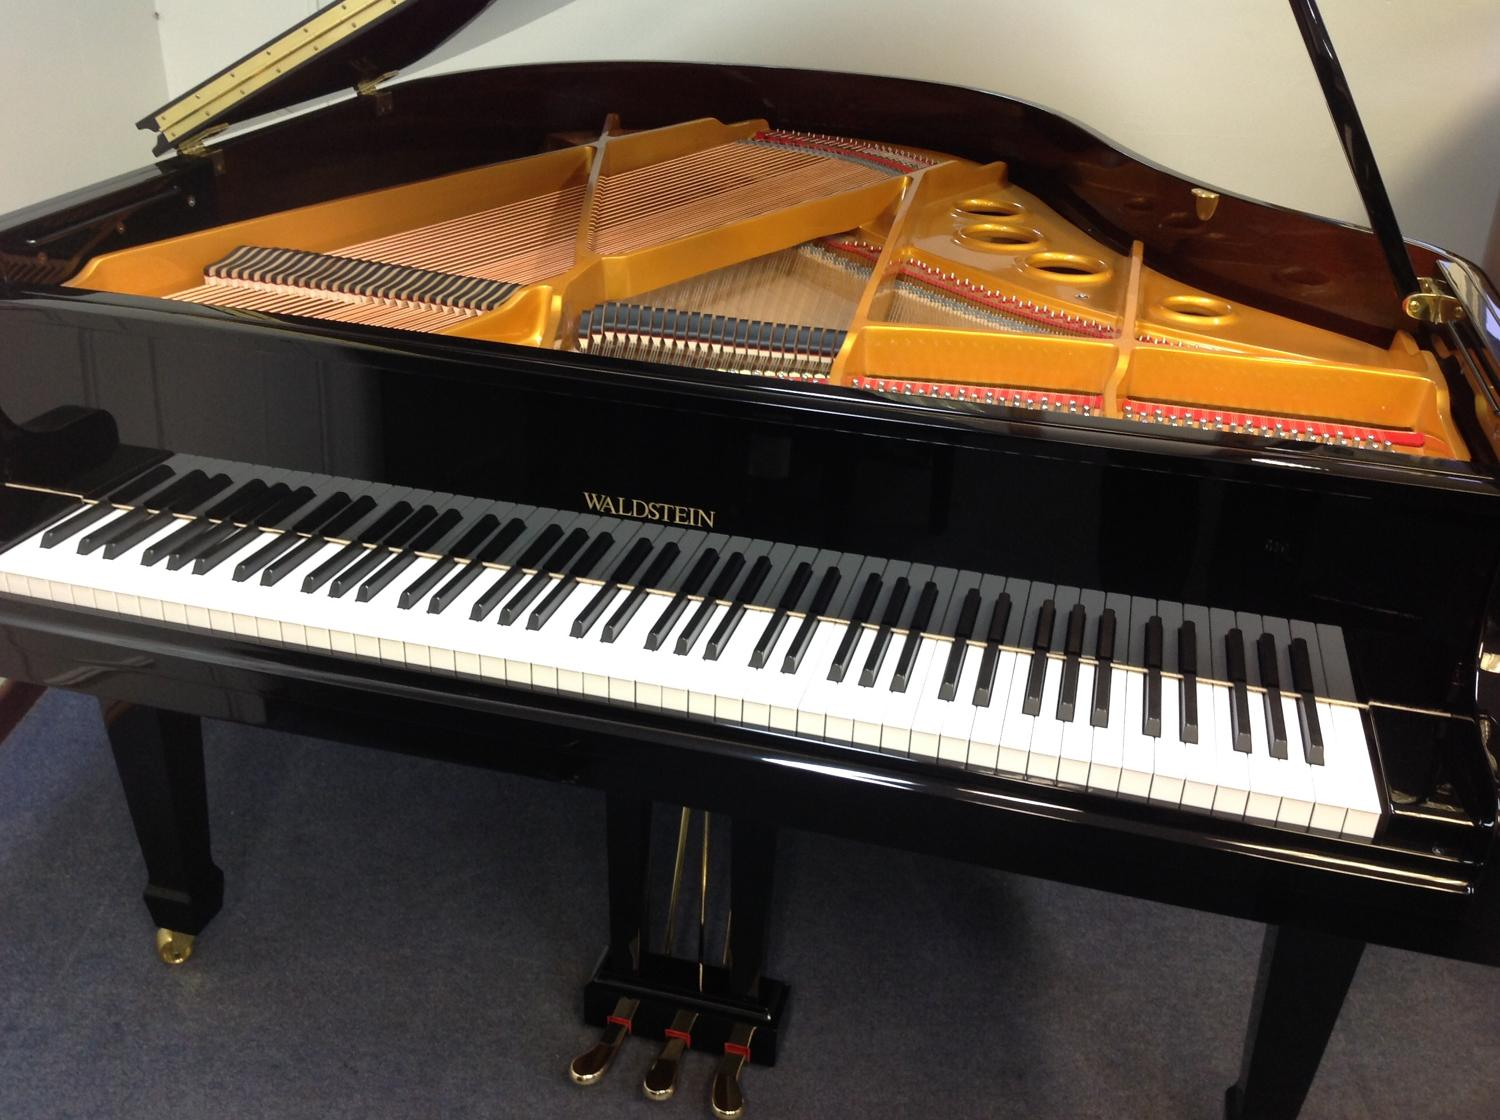 Waldstein baby grand piano in grand pianos for sale for Size of baby grand piano